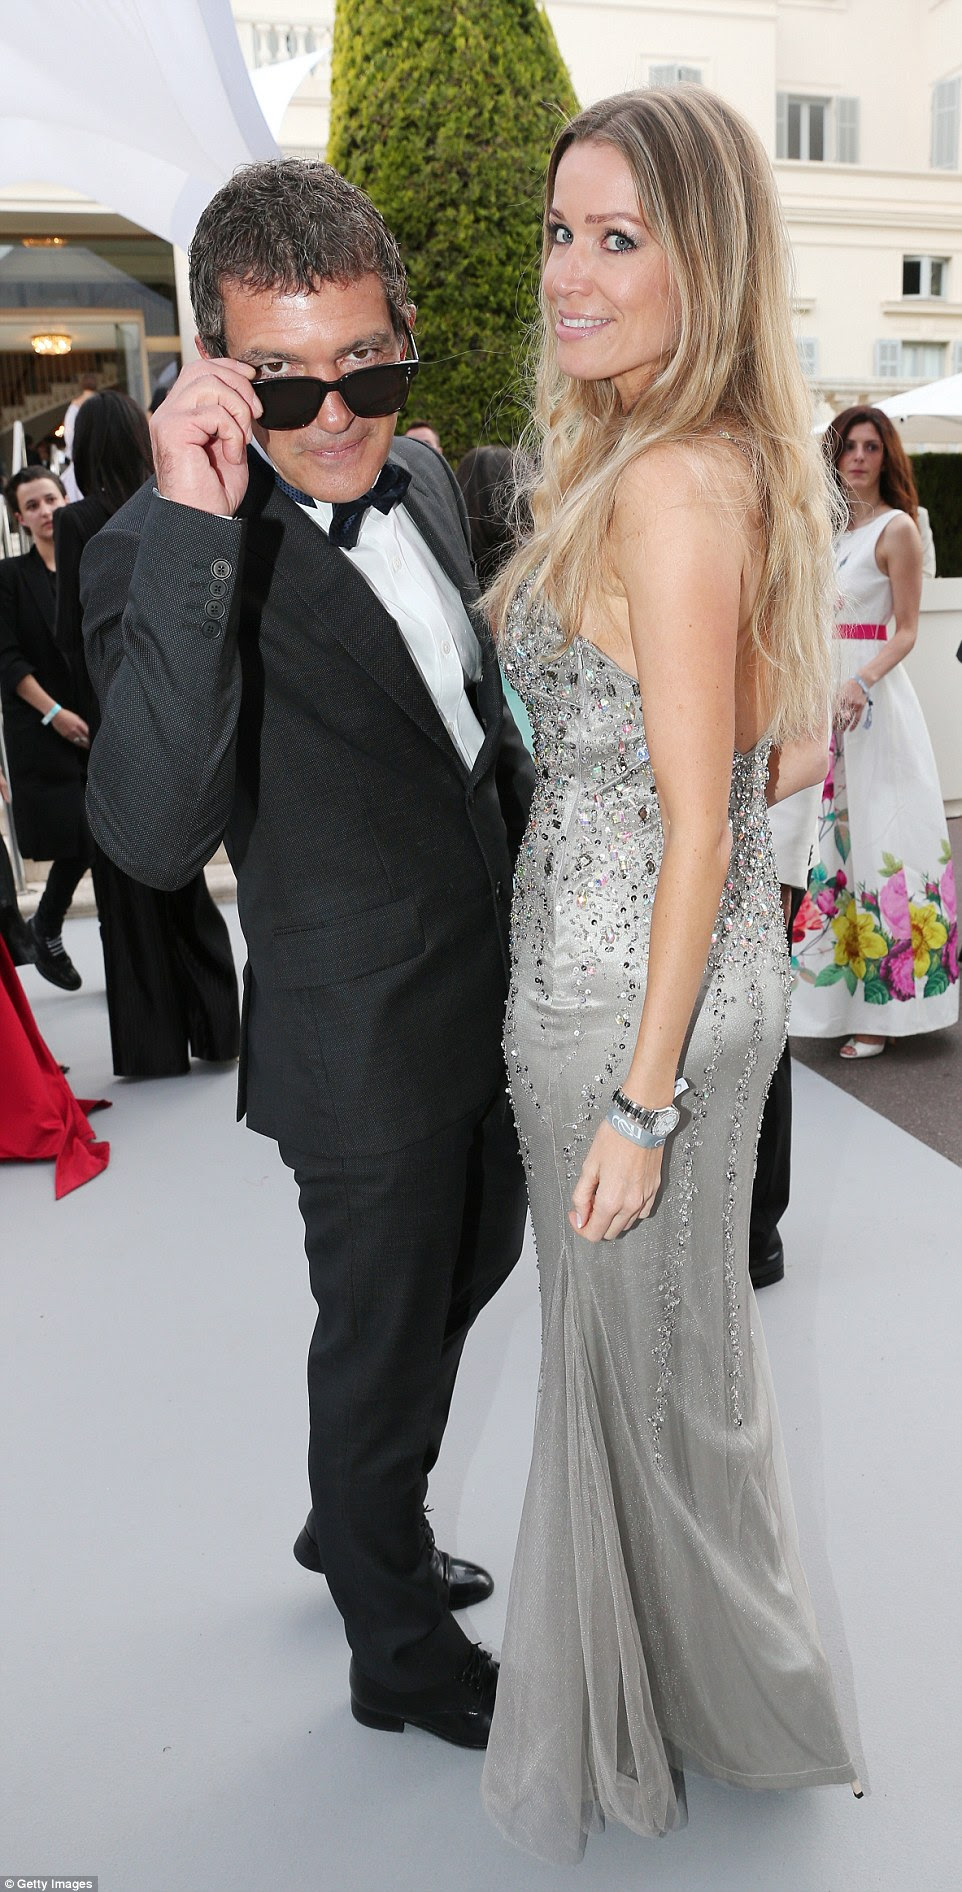 The Spanish star has been dating his Dutch-German girlfriend Nicole Kimpel, an investment adviser, since meeting her in Cannes in 2014